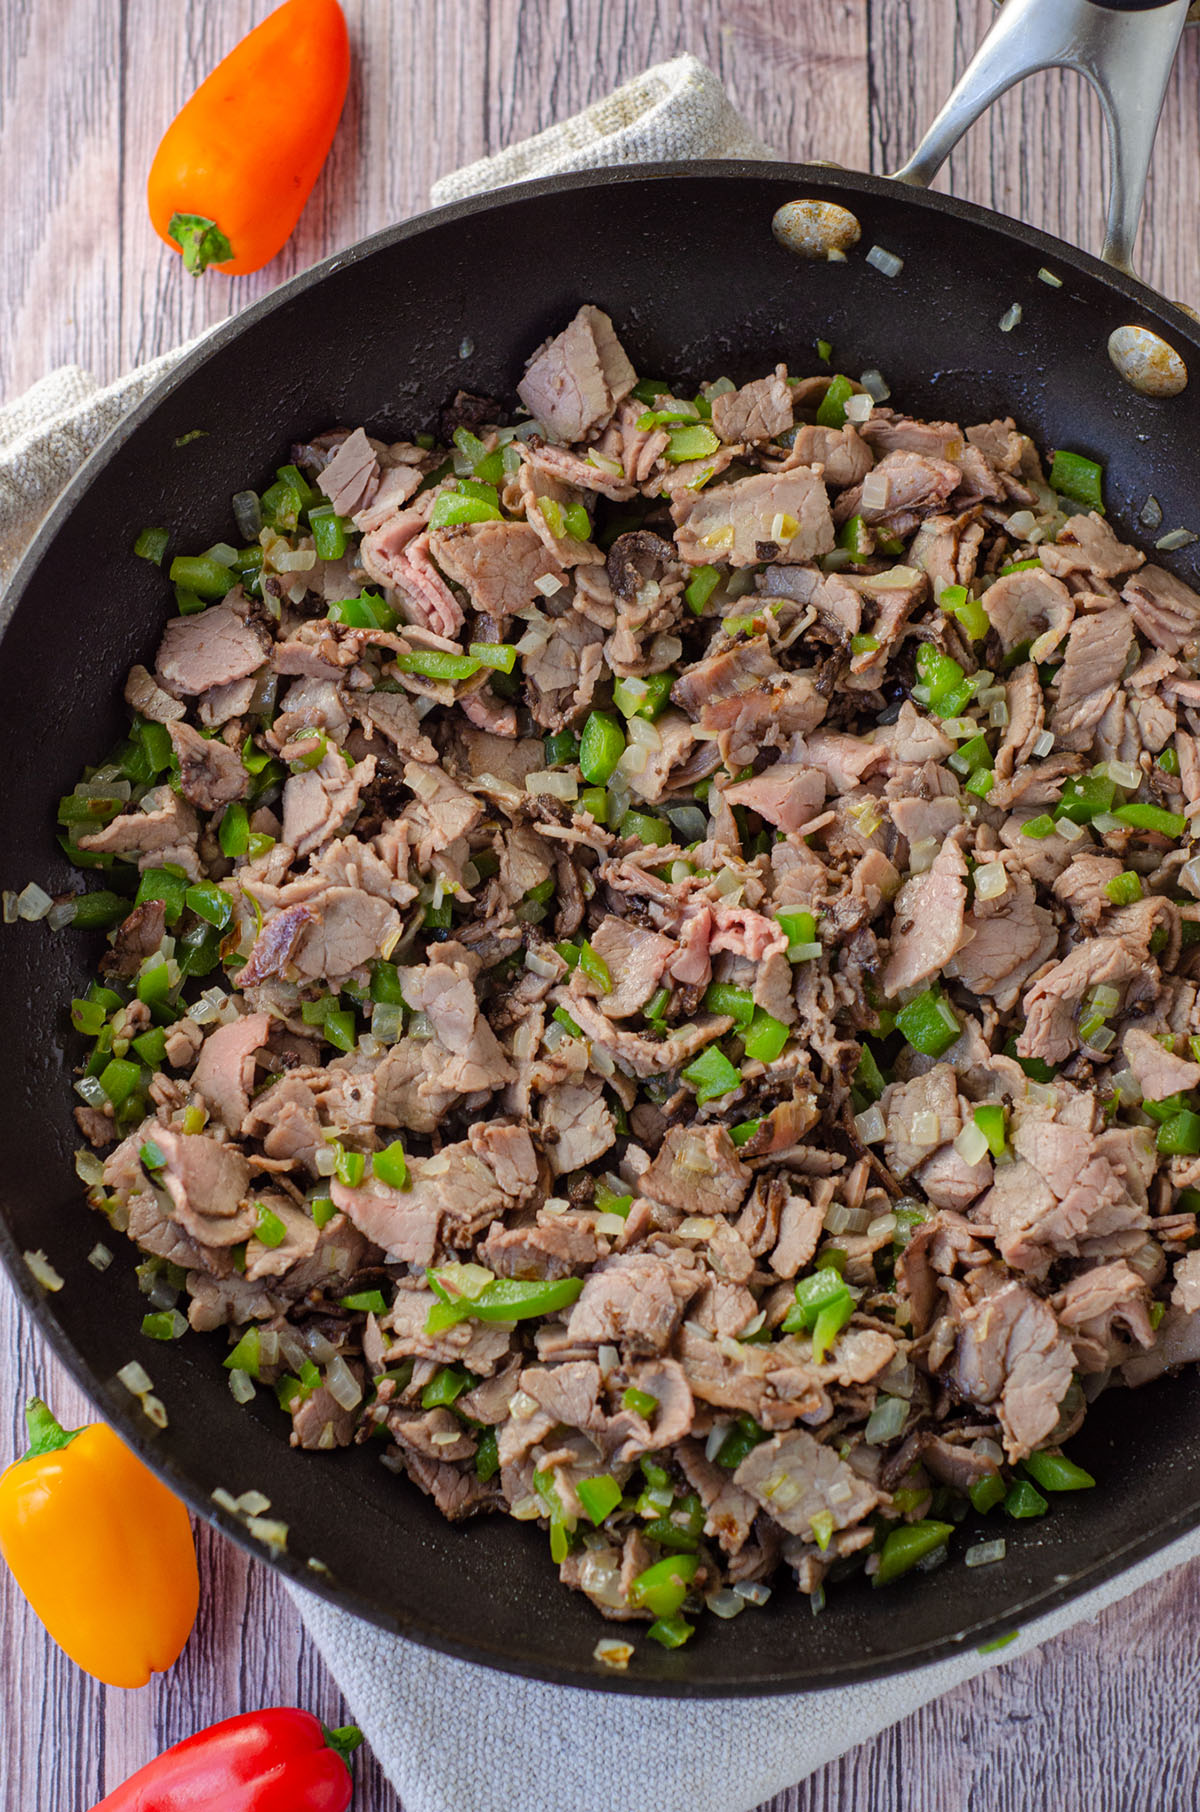 meat, peppers, mushrooms, and onions in a frying pan